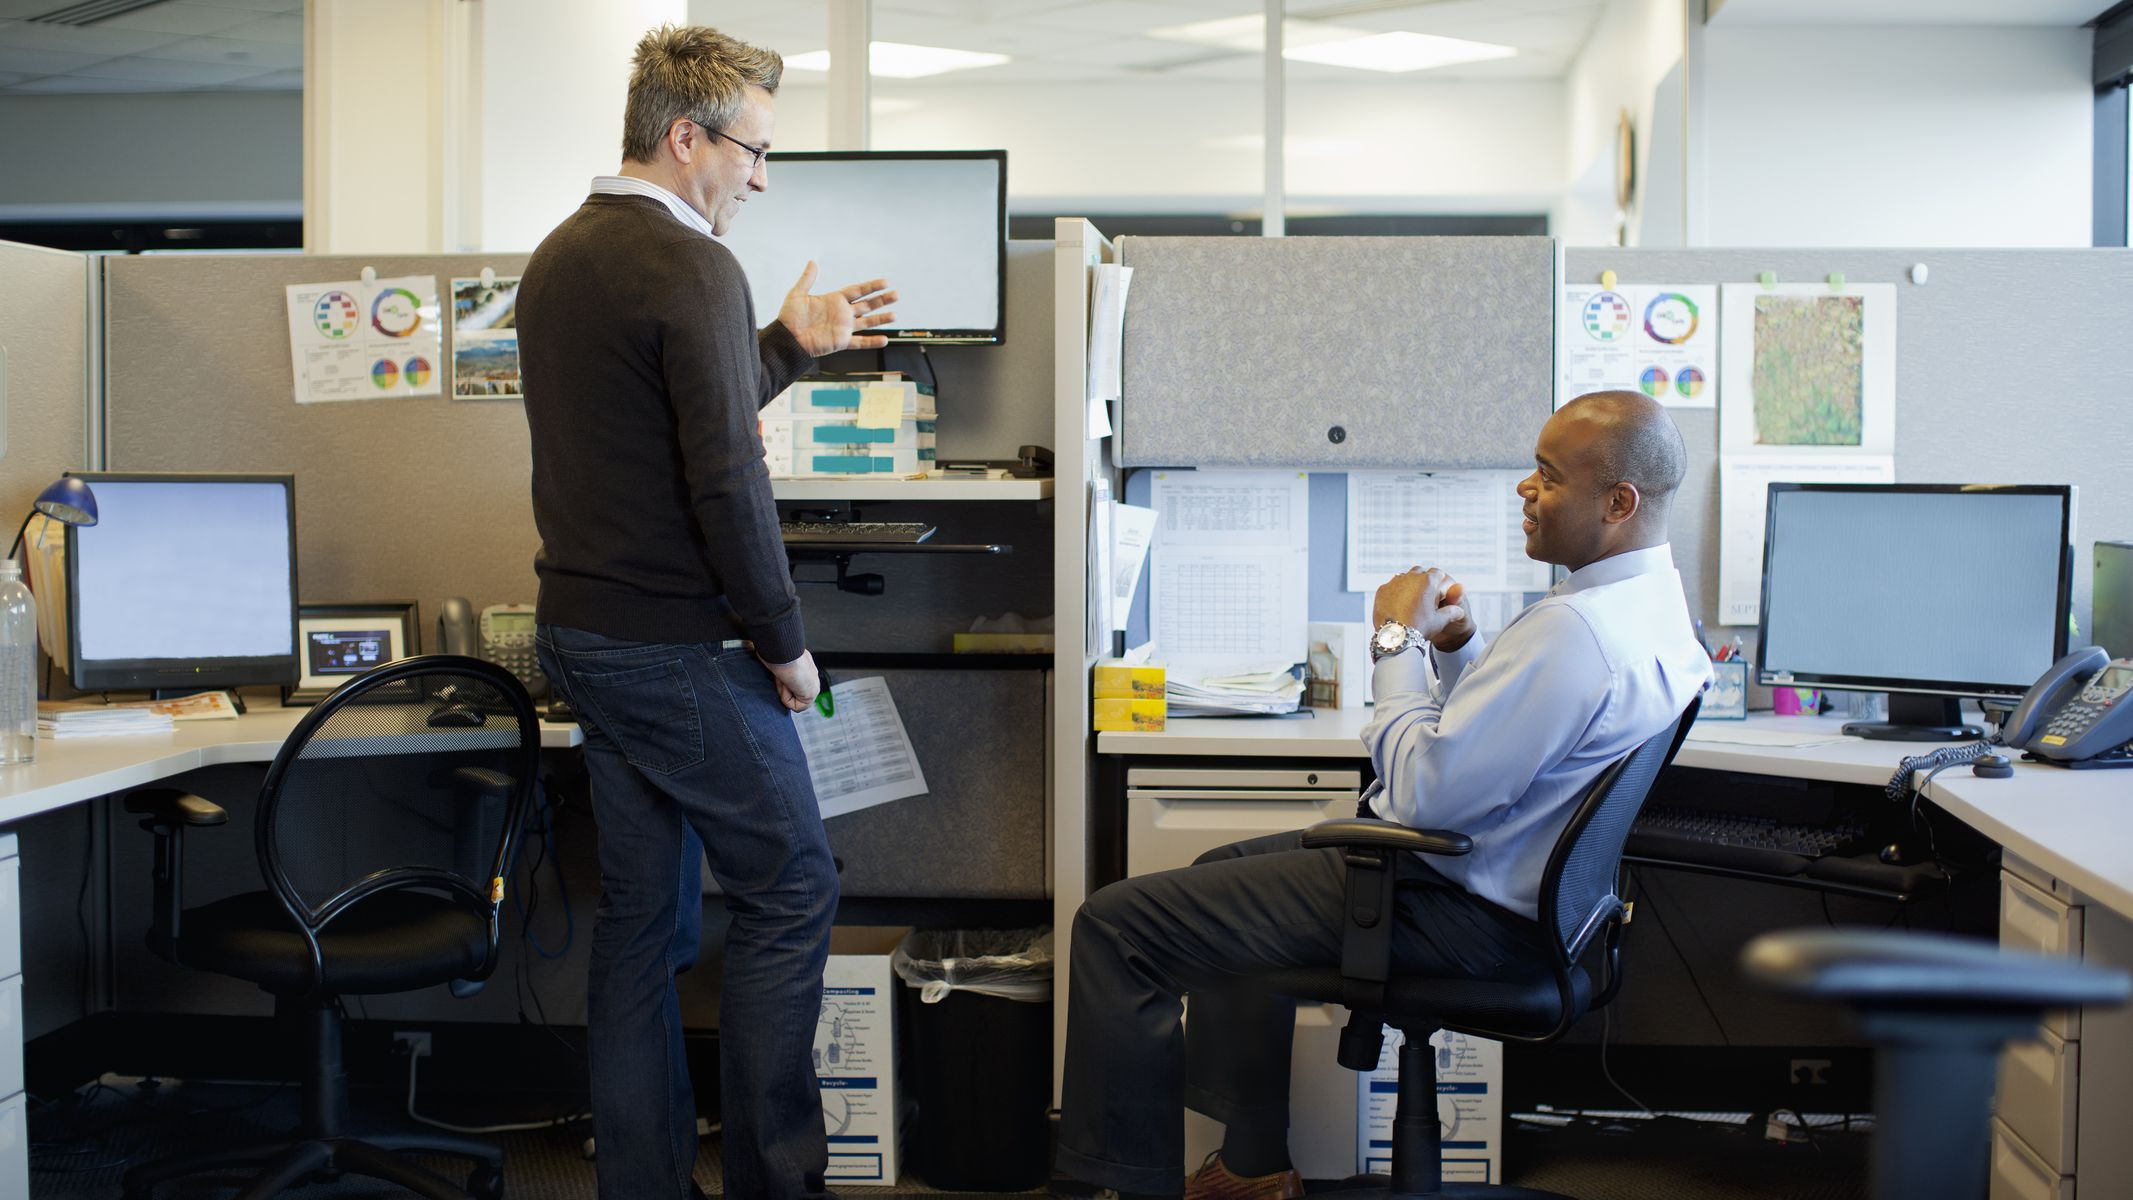 How To Have Proper Etiquette In The Office Cubicle